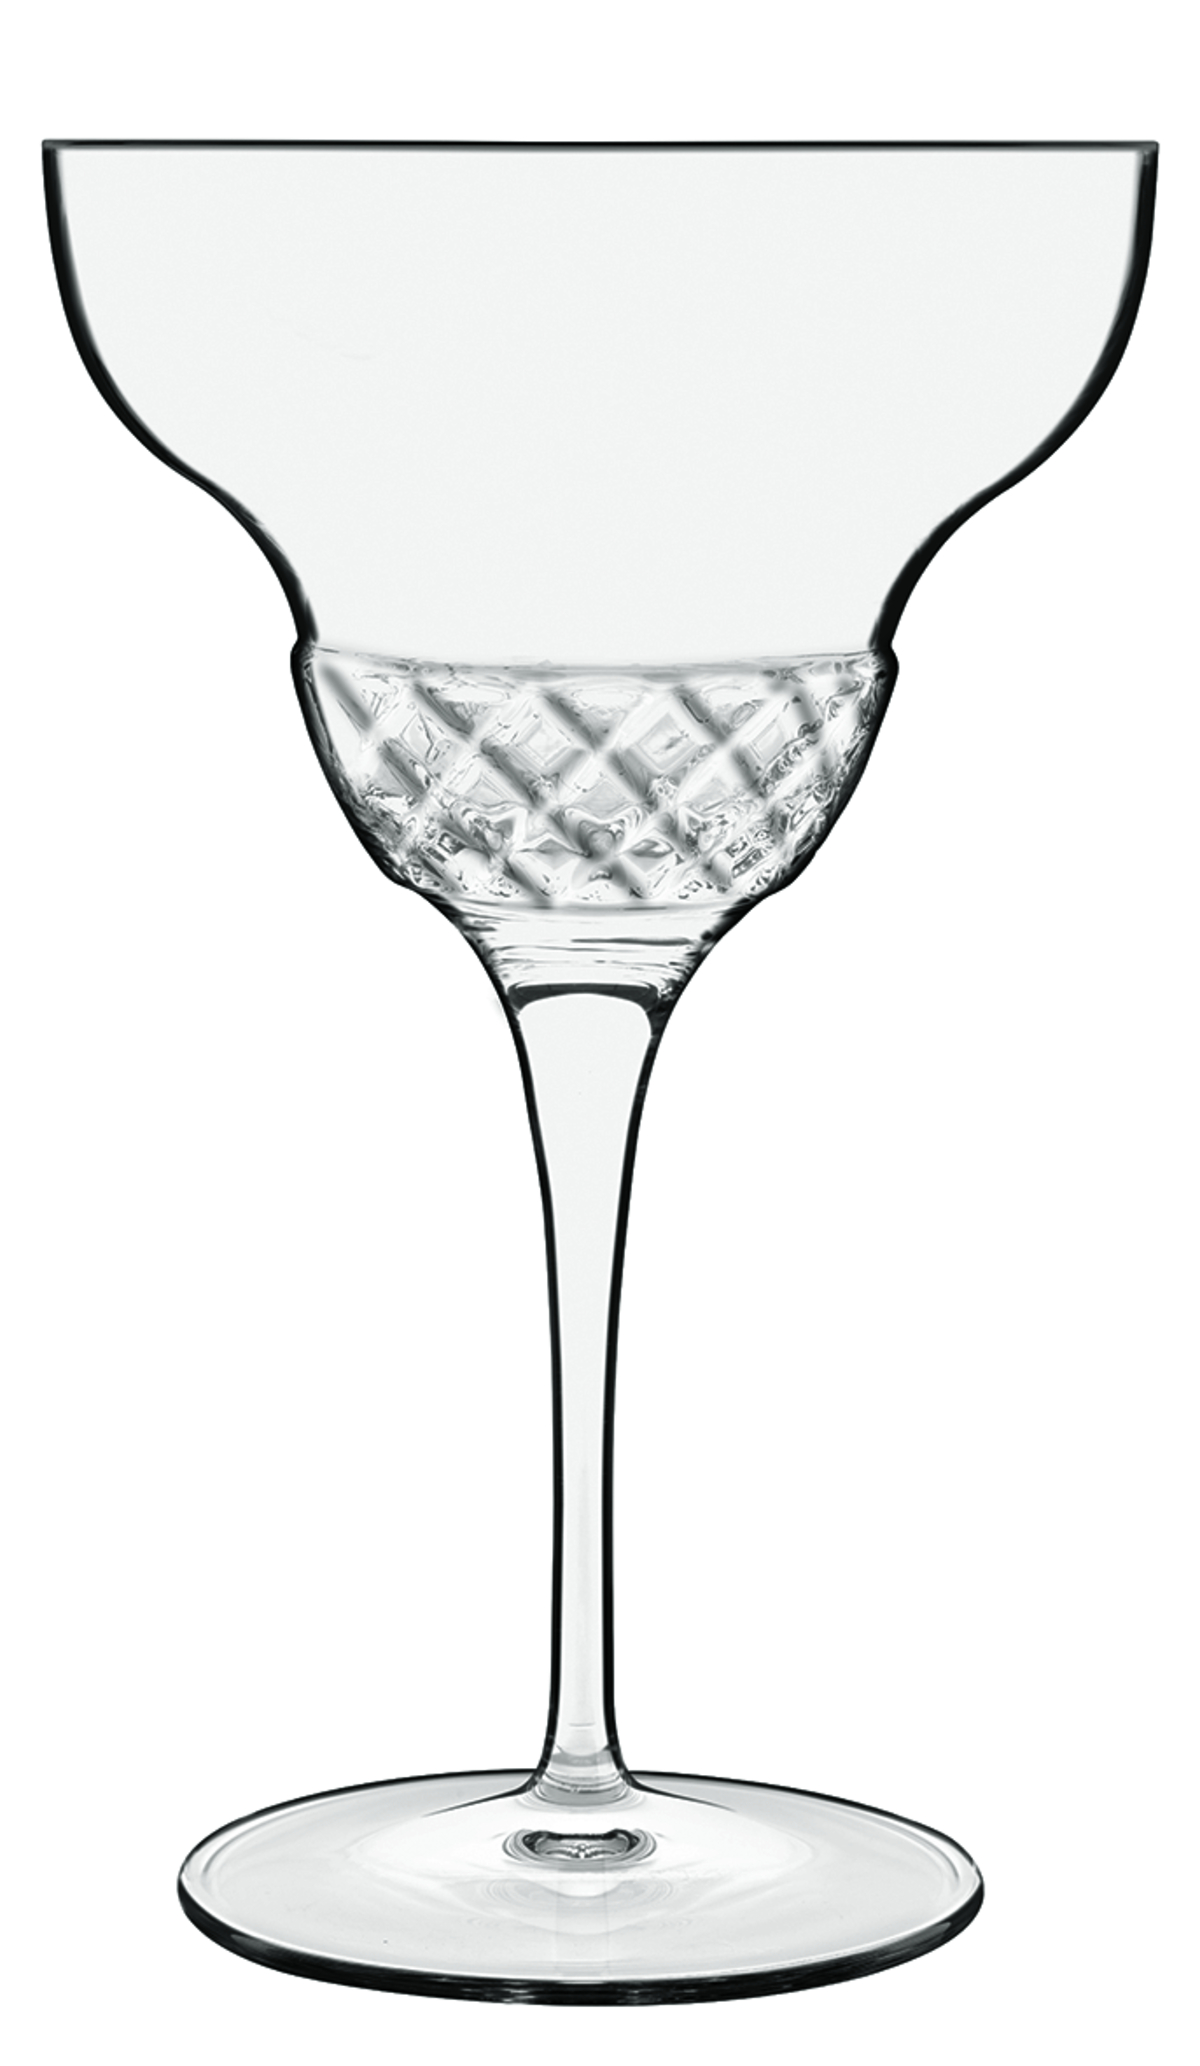 Coupe cocktail margarita 39 cl Roma 1960 Luigi Bormioli